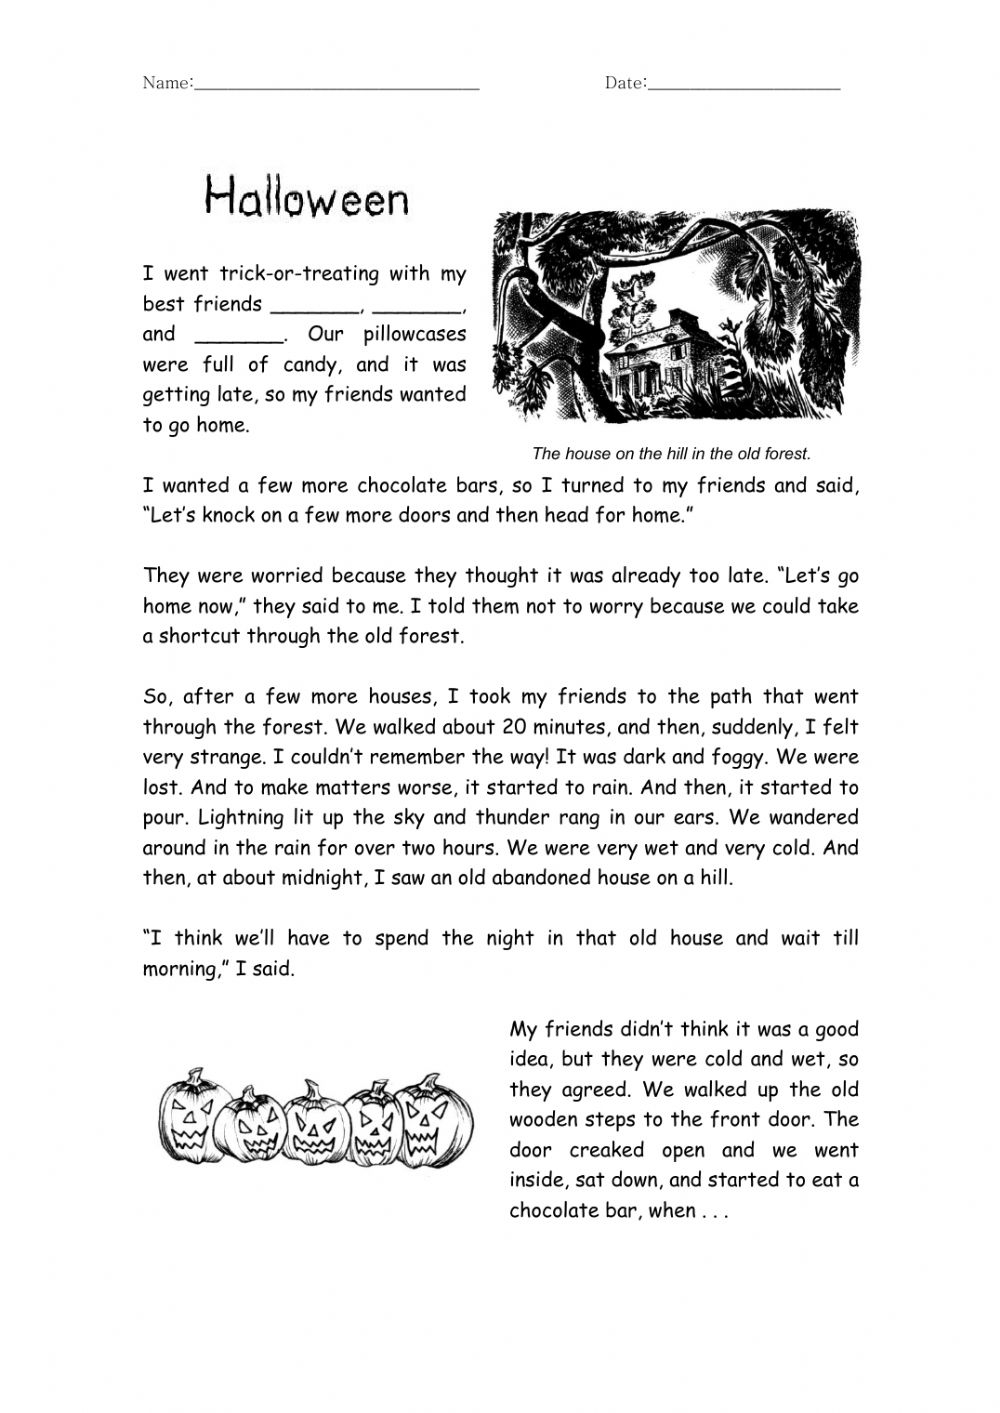 Halloween Haunted House, The Story Worksheet